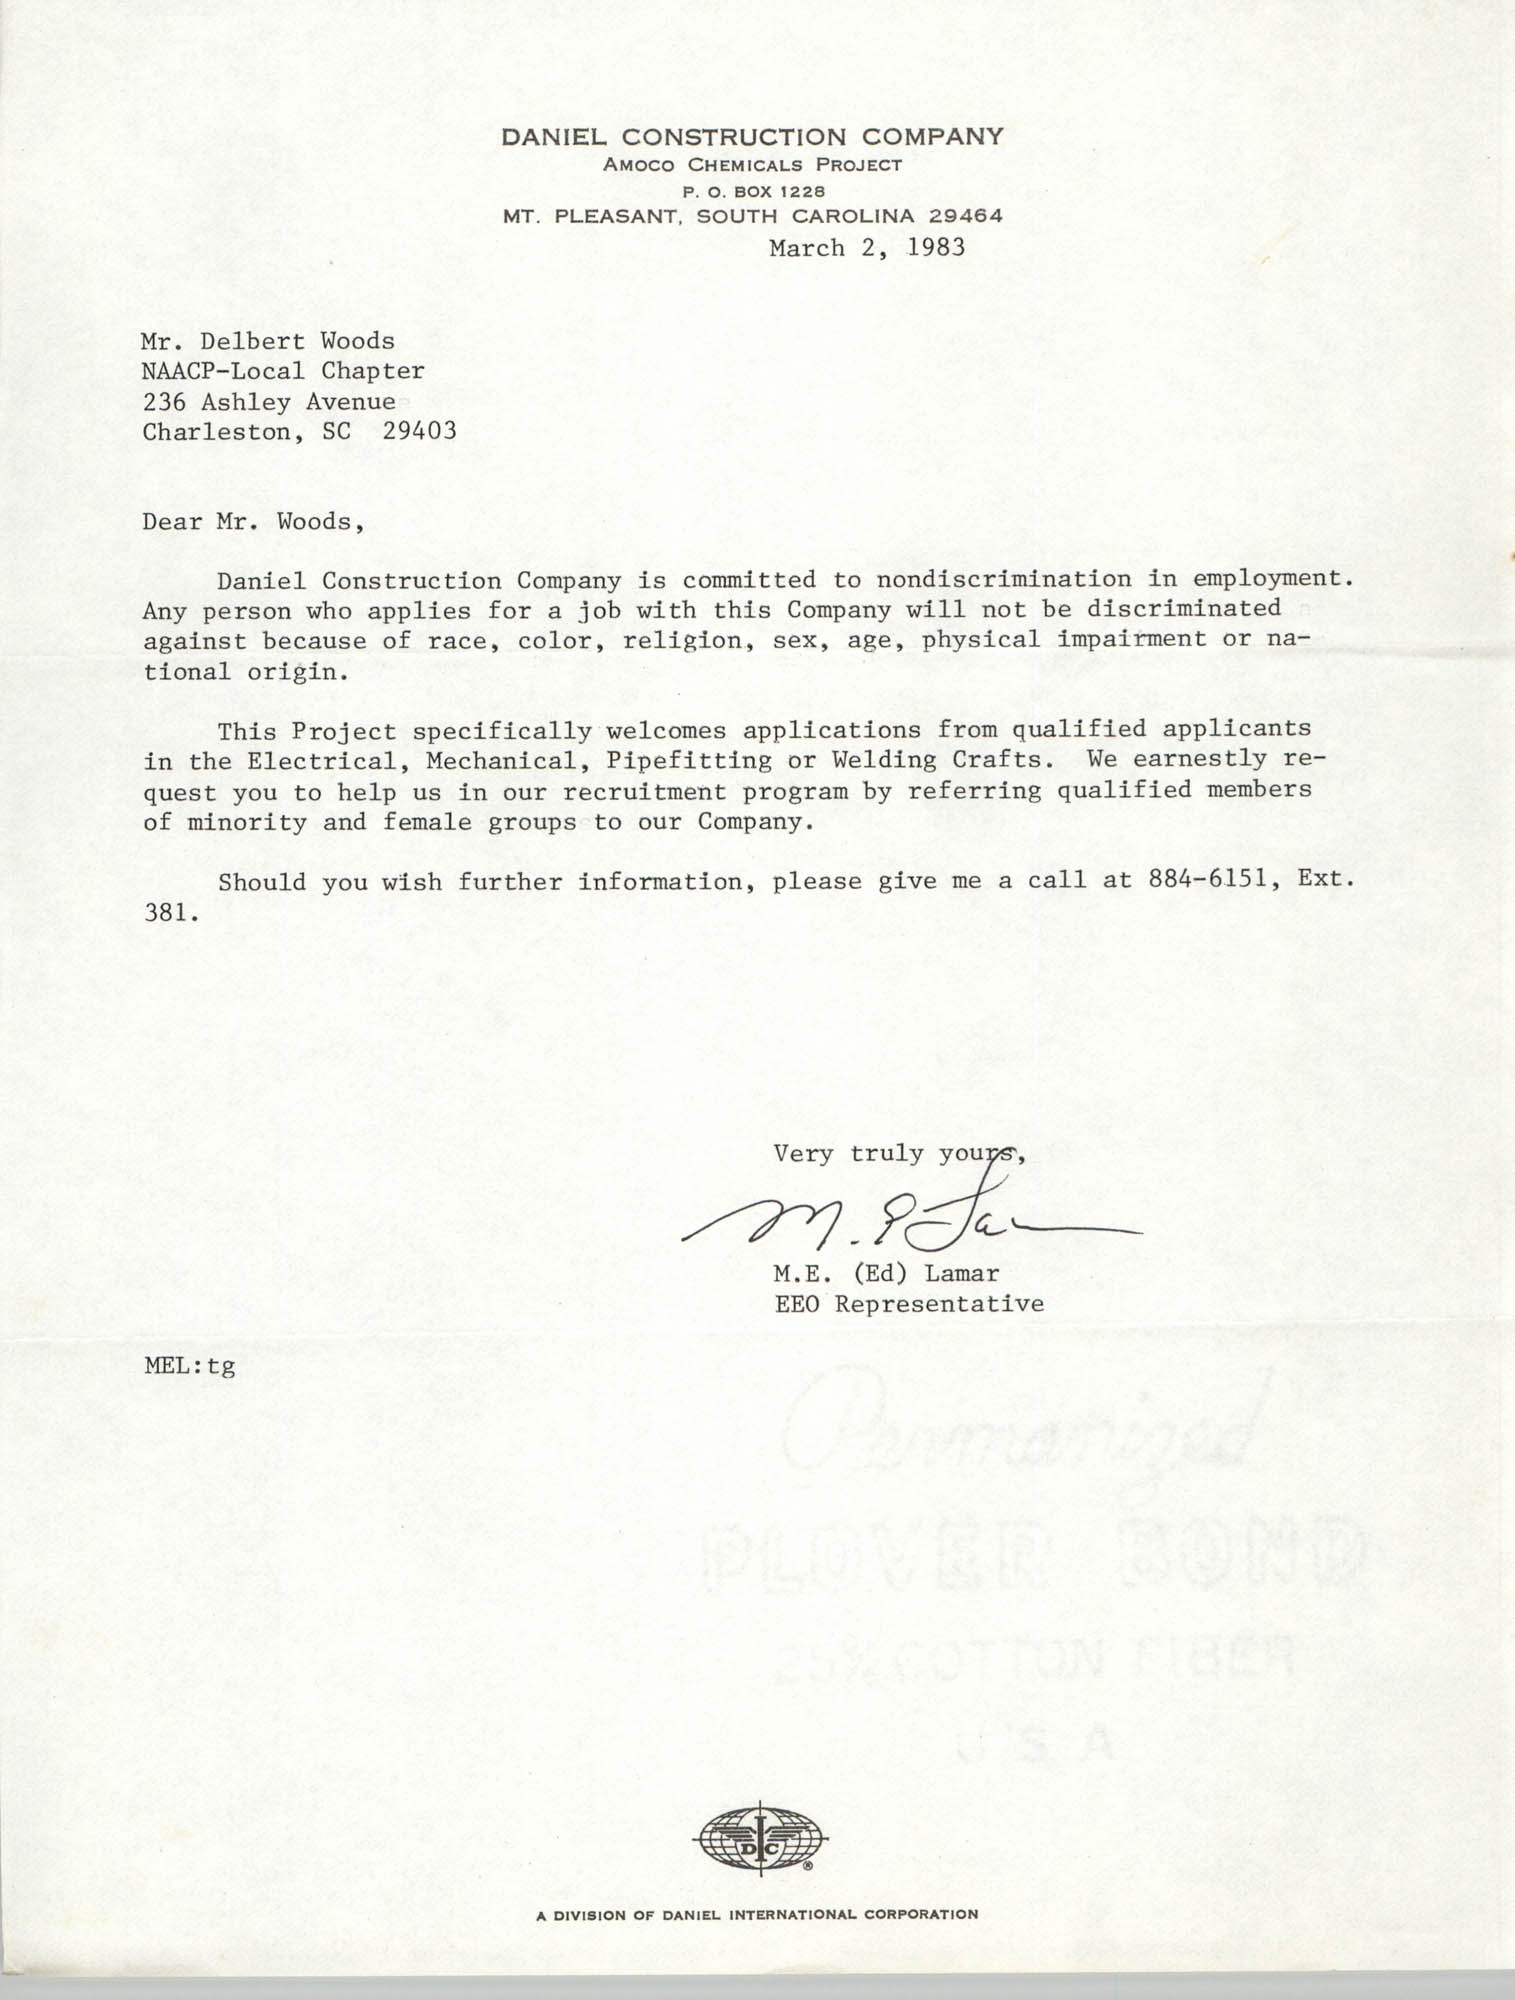 Letter from M. E. Lamar to Delbert Woods, March 2, 1983